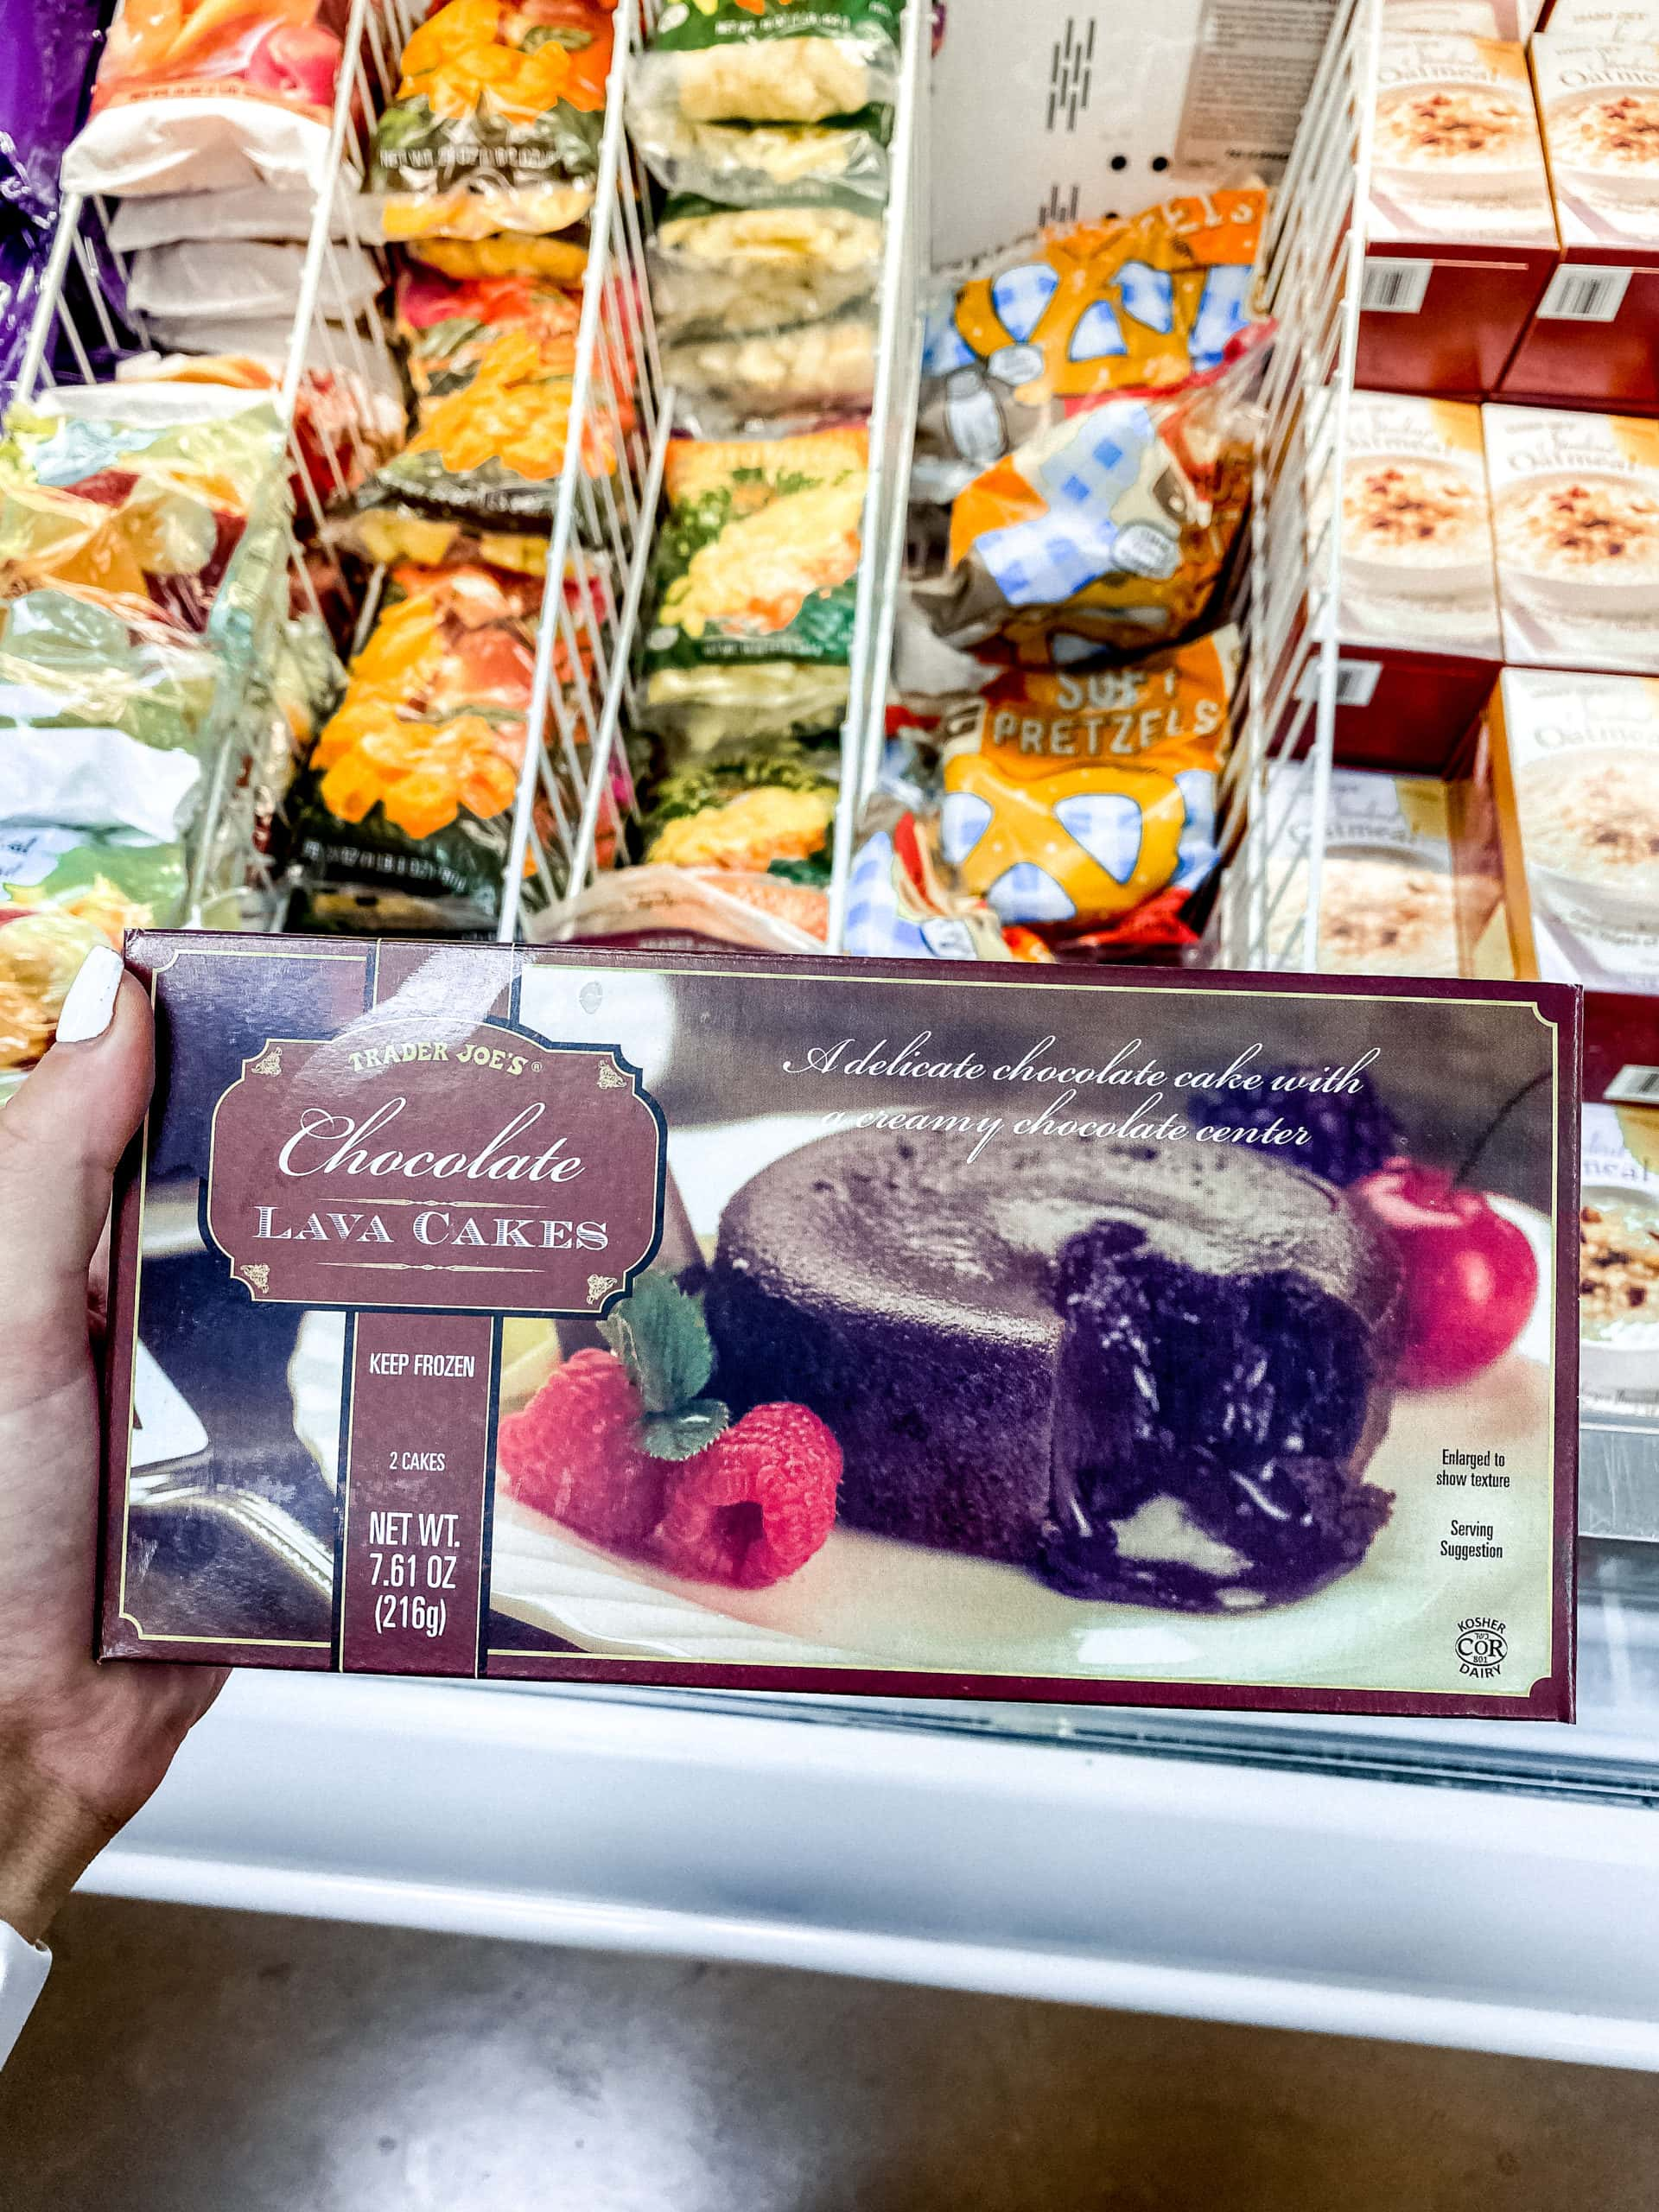 Chocolate Lava Cake from Trader Joe's. Best Foods to Buy from Trader Joe's.